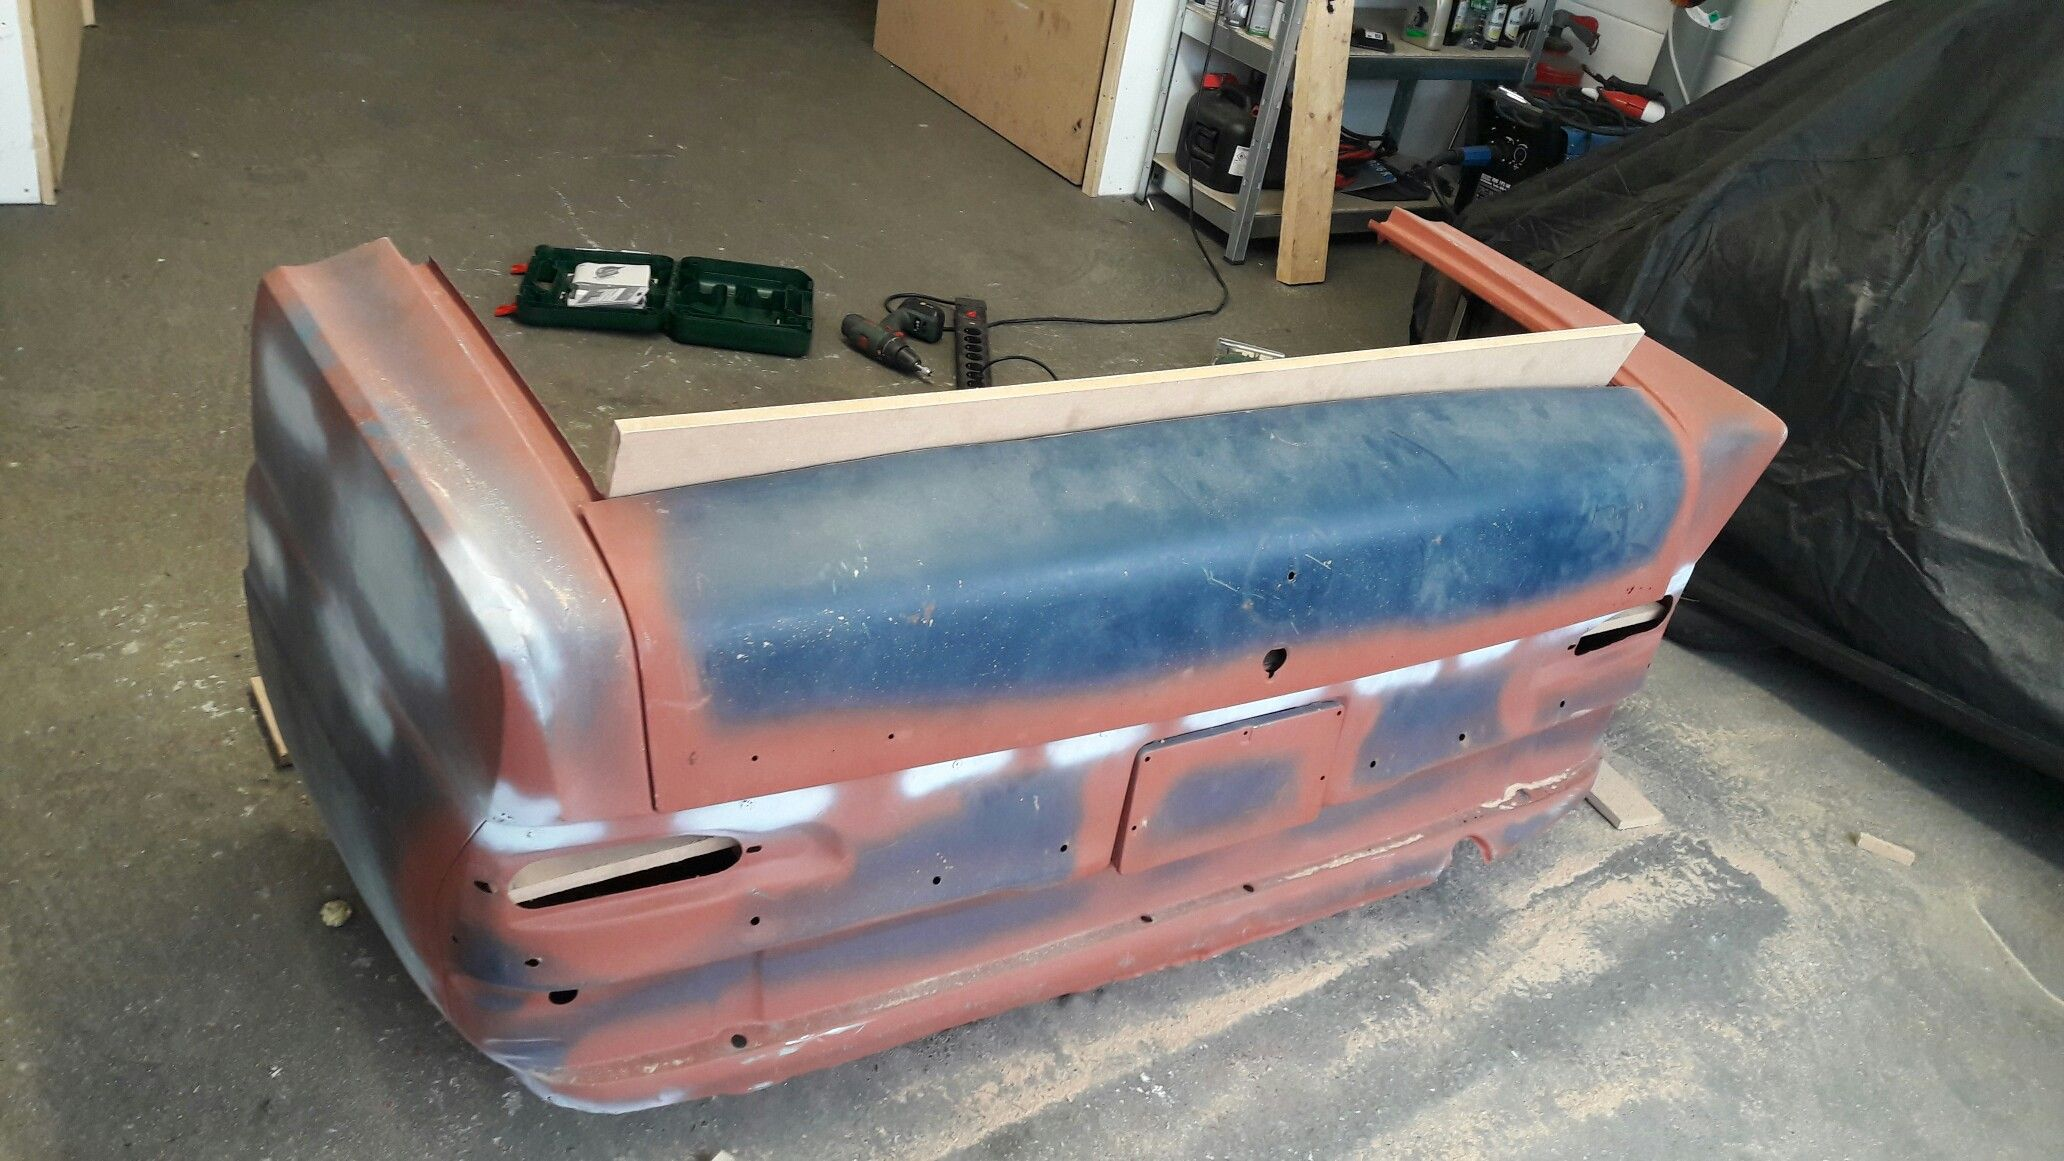 Pin by David Nanni on My W110 Car Couch Project - Auto Möbel ...